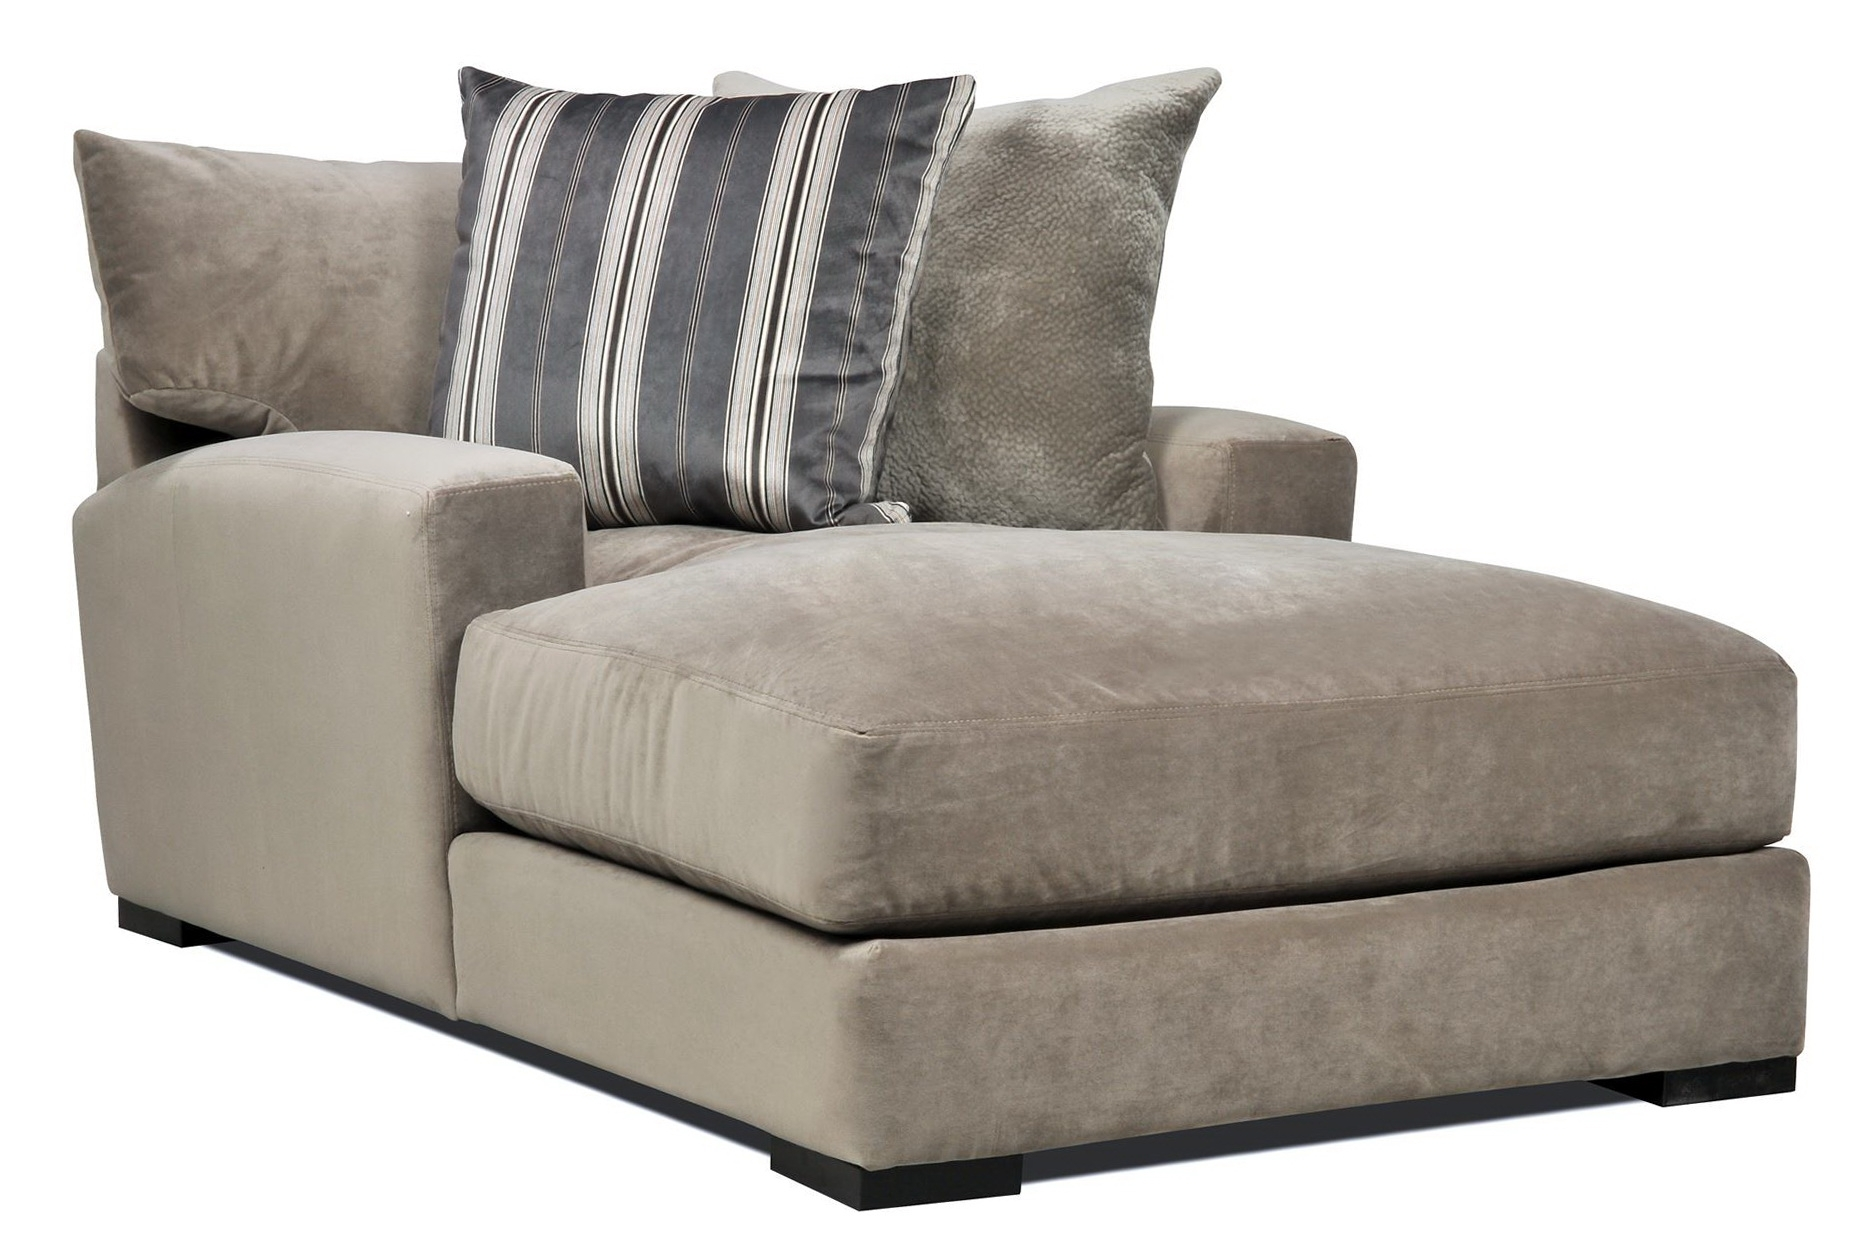 Chaise Lounge For Popular Wide Sofa Chairs (View 4 of 20)